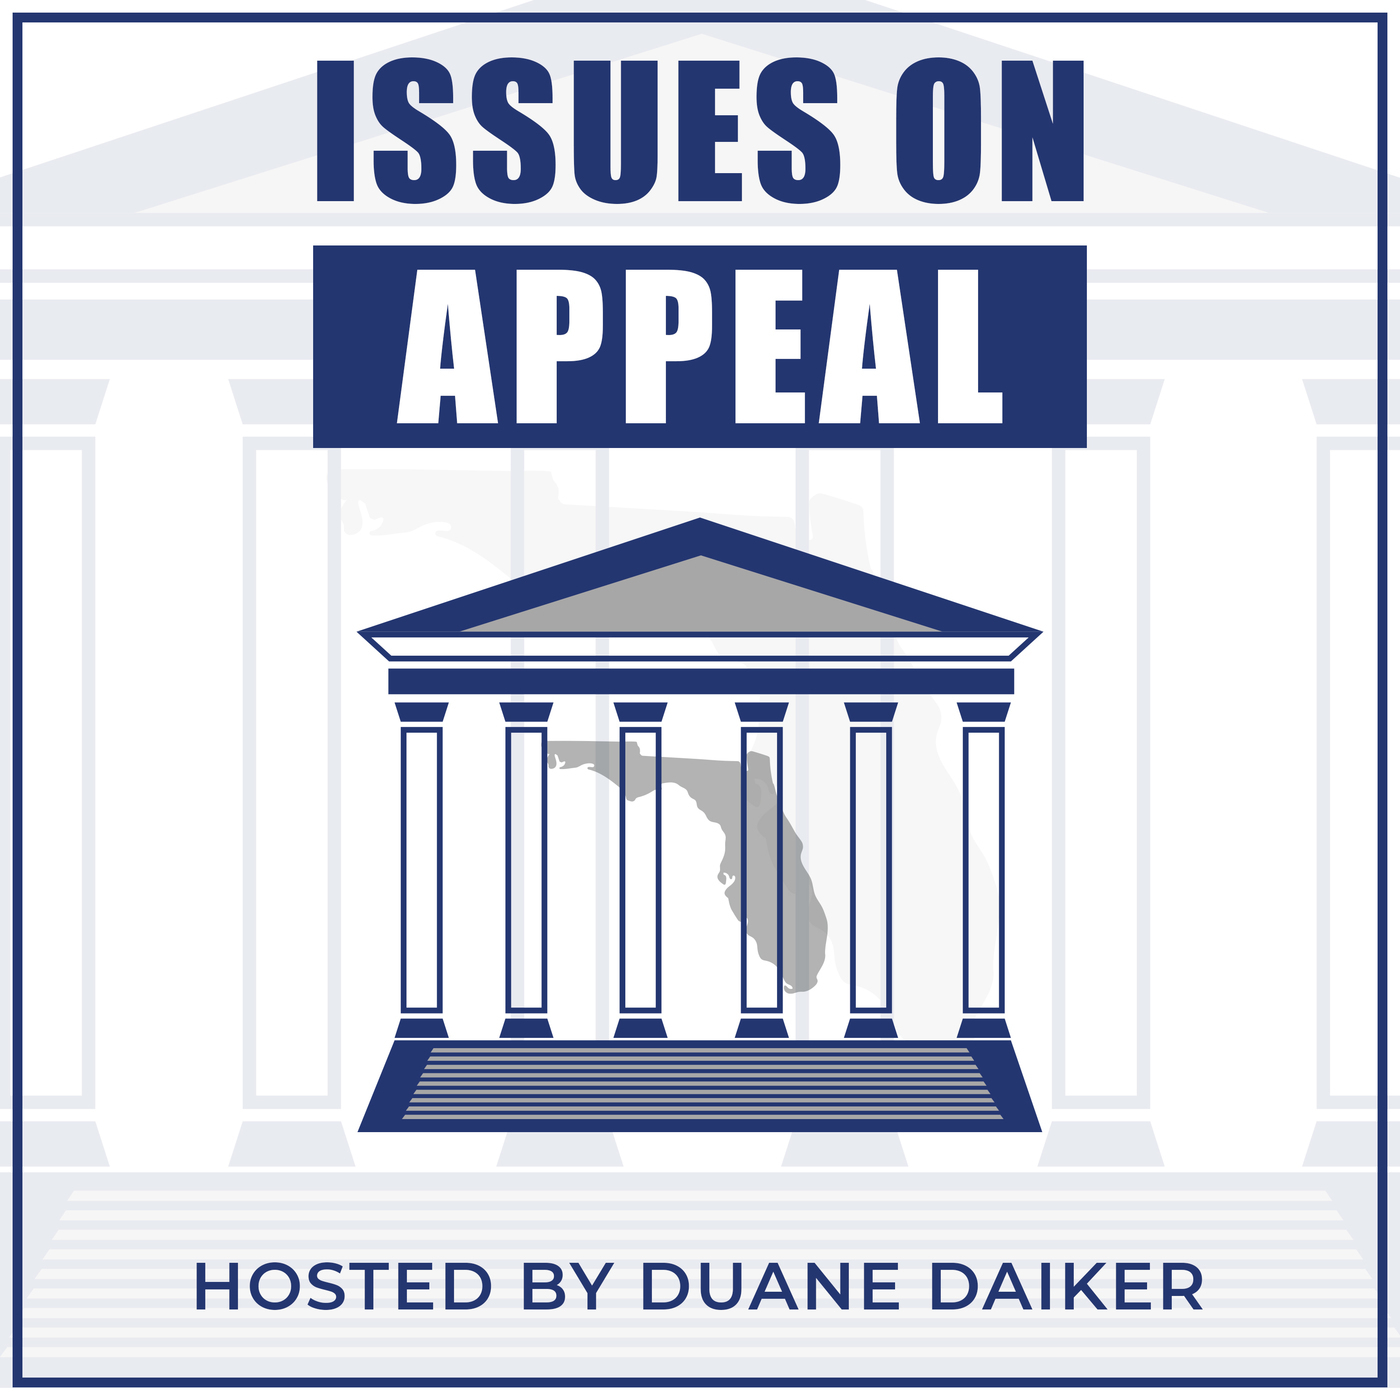 Issues on Appeal 20a: Happy New Year!